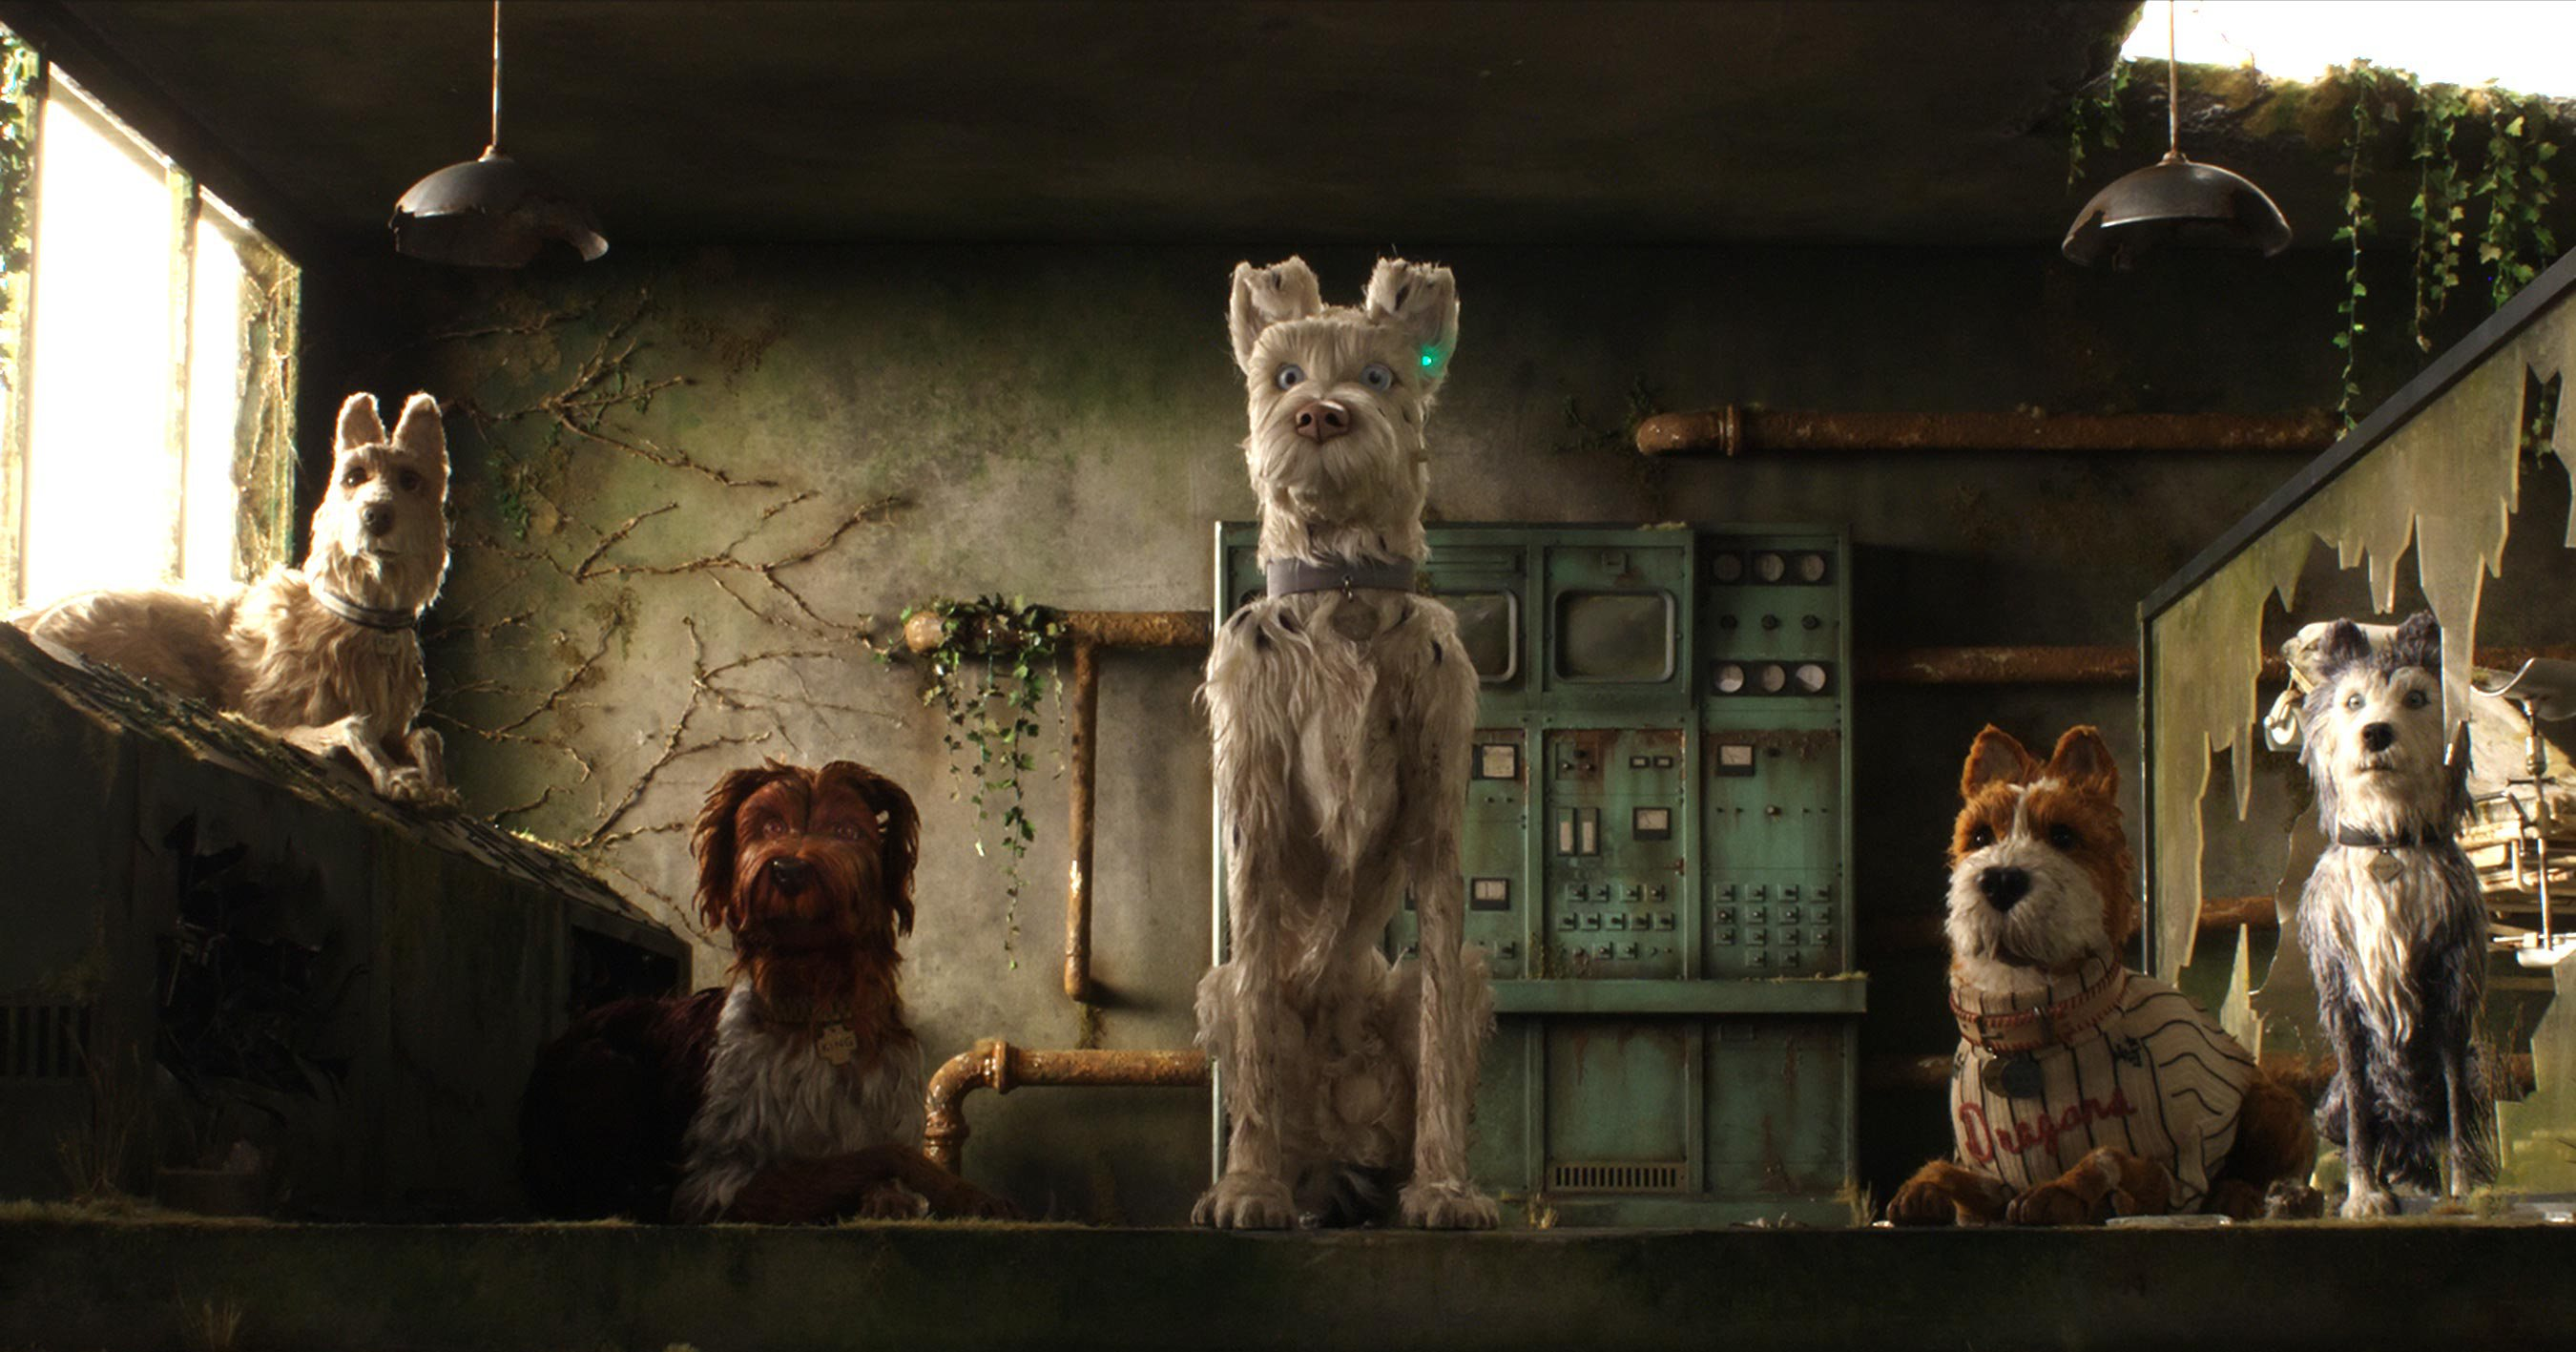 "(From L-R): Edward Norton as ""Rex,"" Bob Balaban as ""King,"" Liev Shreiber as ""Spots,"" Bill Murray as ""Boss,"" Jeff Goldblum as ""Duke"" and Bryan Cranston as ""Chief"" in the film ISLE OF DOGS. Photo Courtesy of Fox Searchlight Pictures. © 2018 Twentieth Century Fox Film Corporation All Rights Reserved"